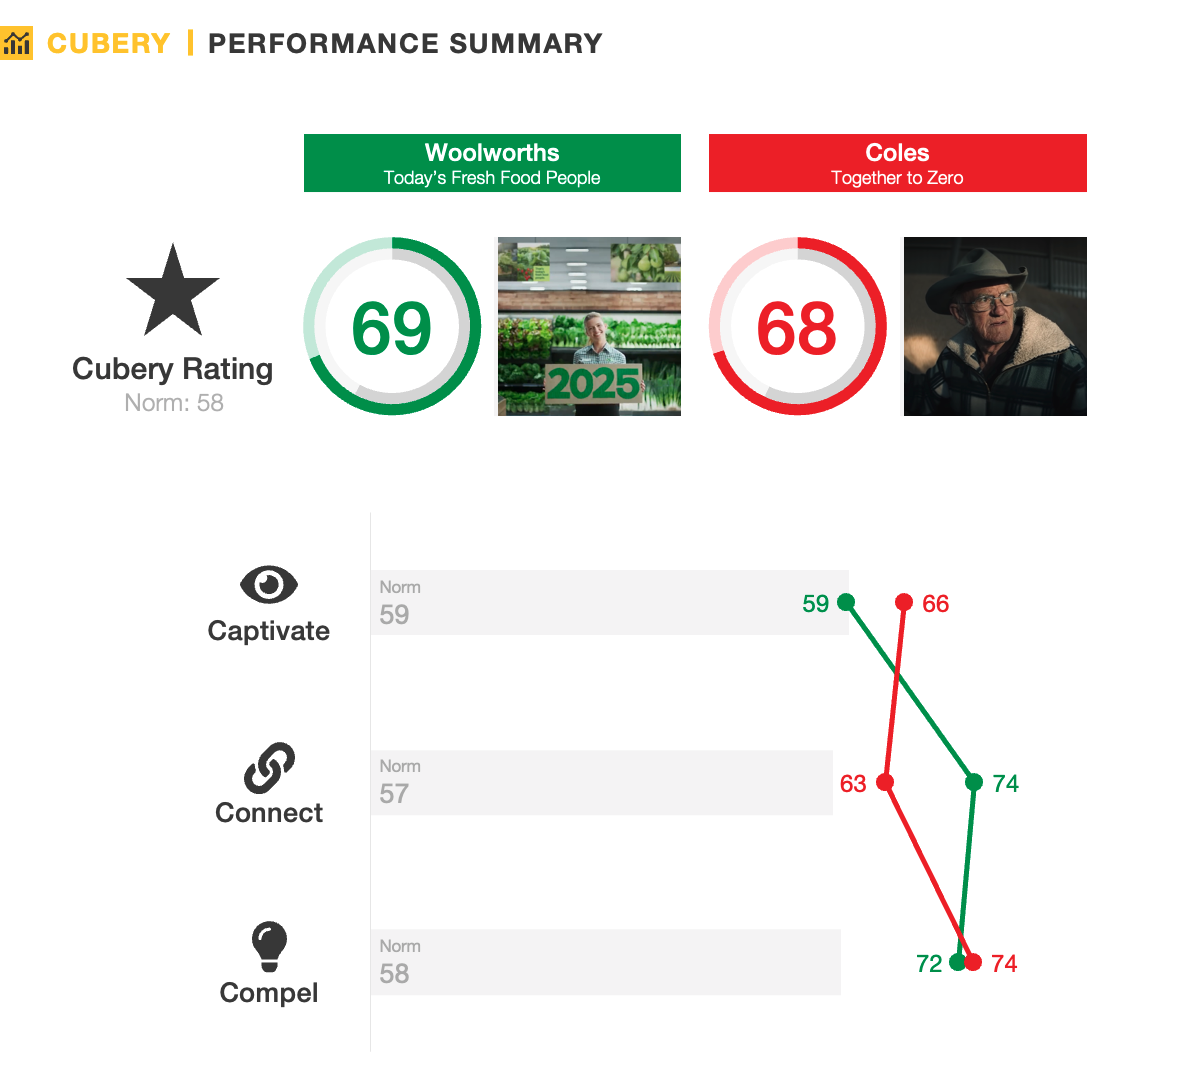 Woolworths and Coles Ad Testing - Performance Summary